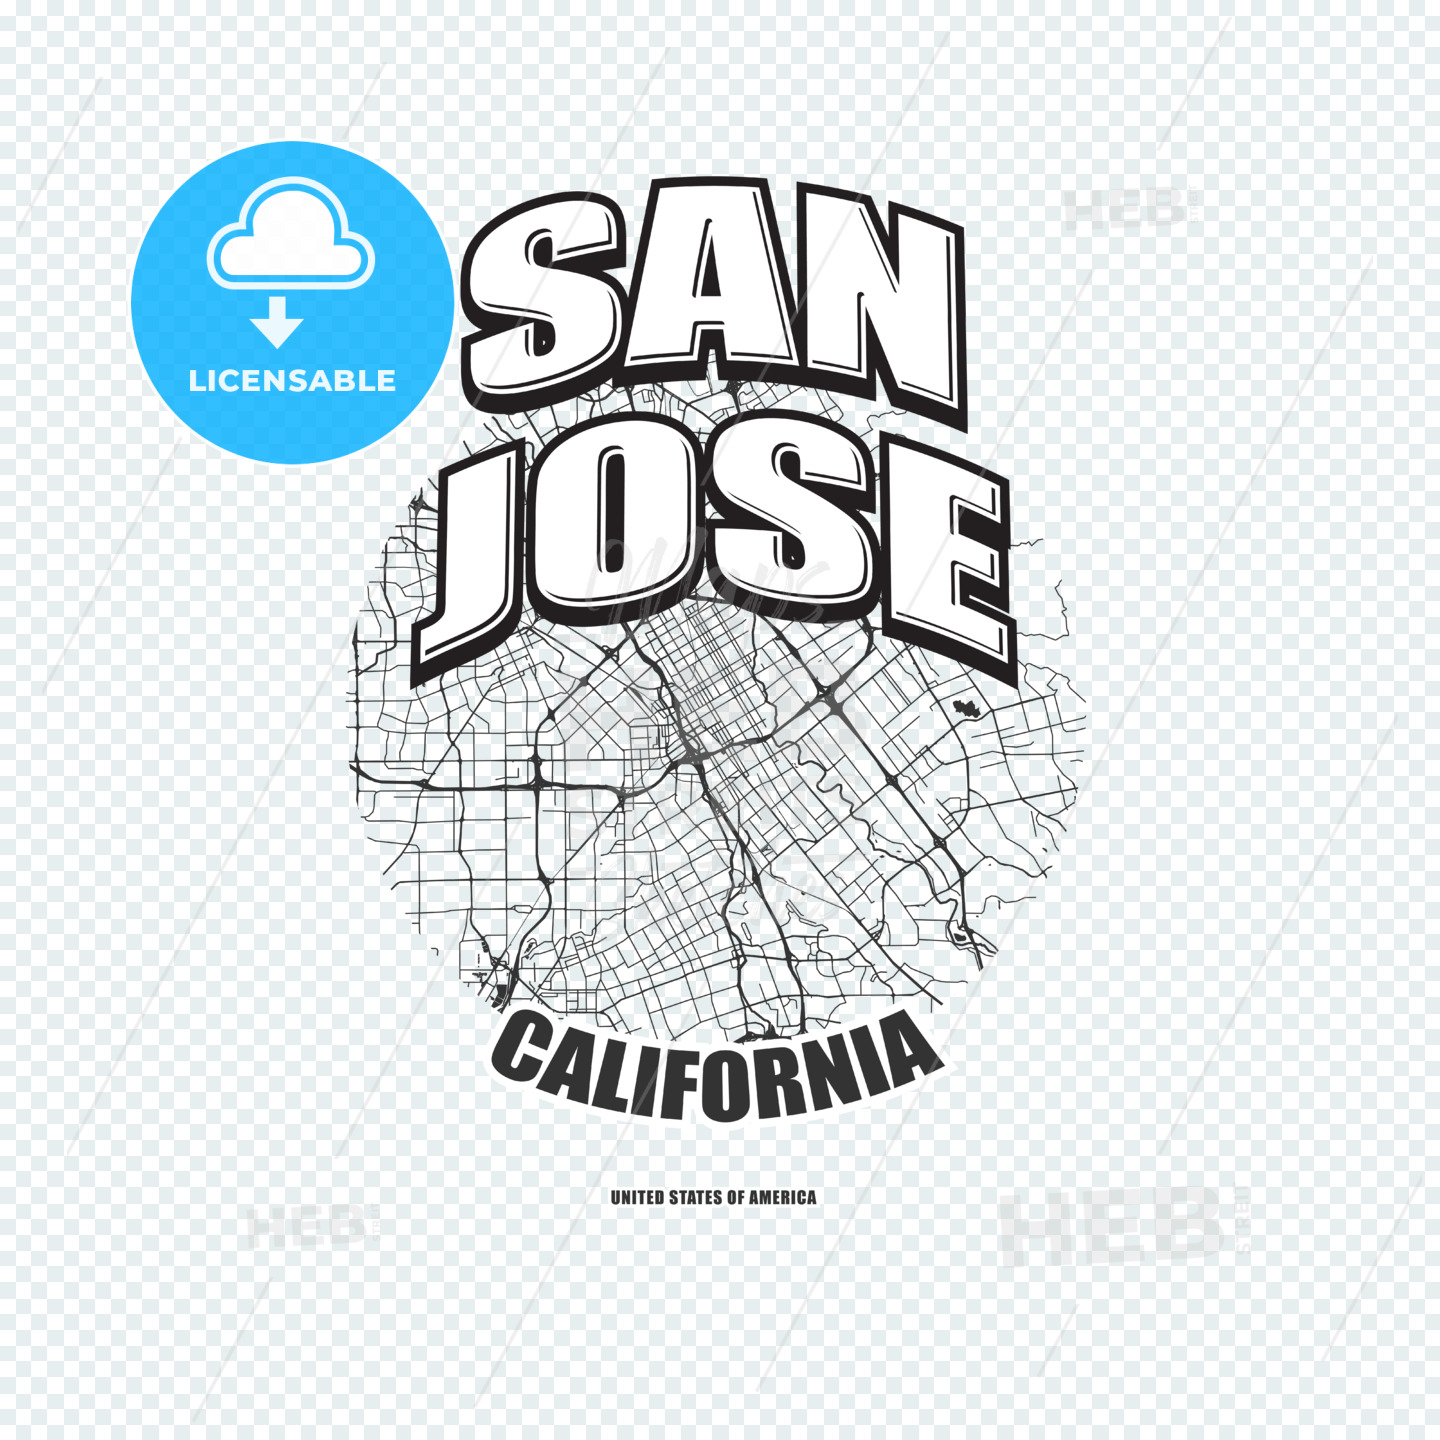 San Jose, California, logo artwork